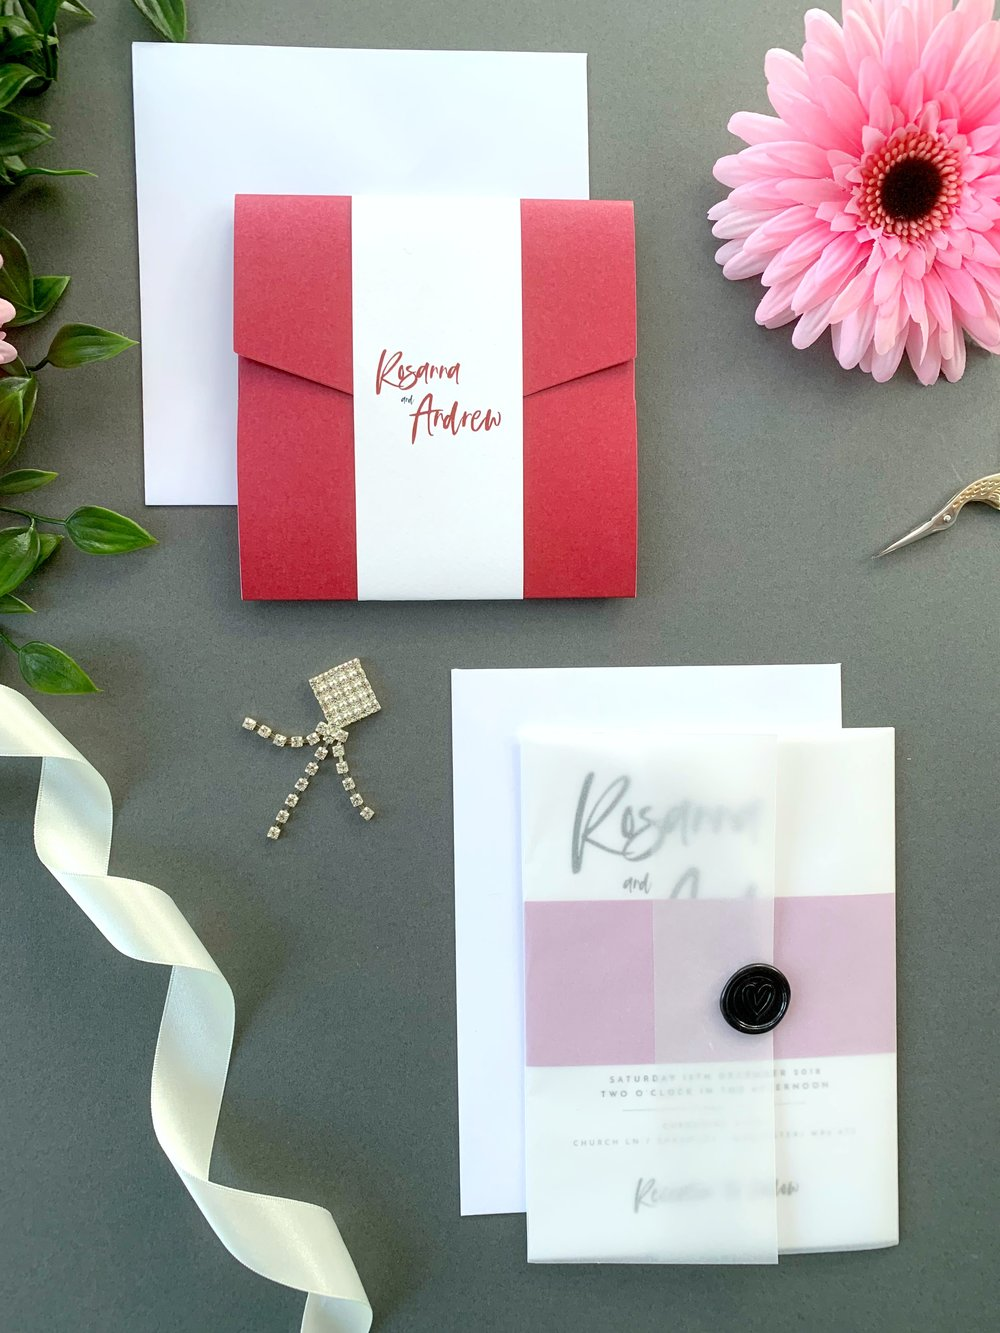 Soho Pocketfold Suite with Paper Belly Band, Invitation Suite with Paper Belly Band, Vellum Jacket and Black Wax Seal